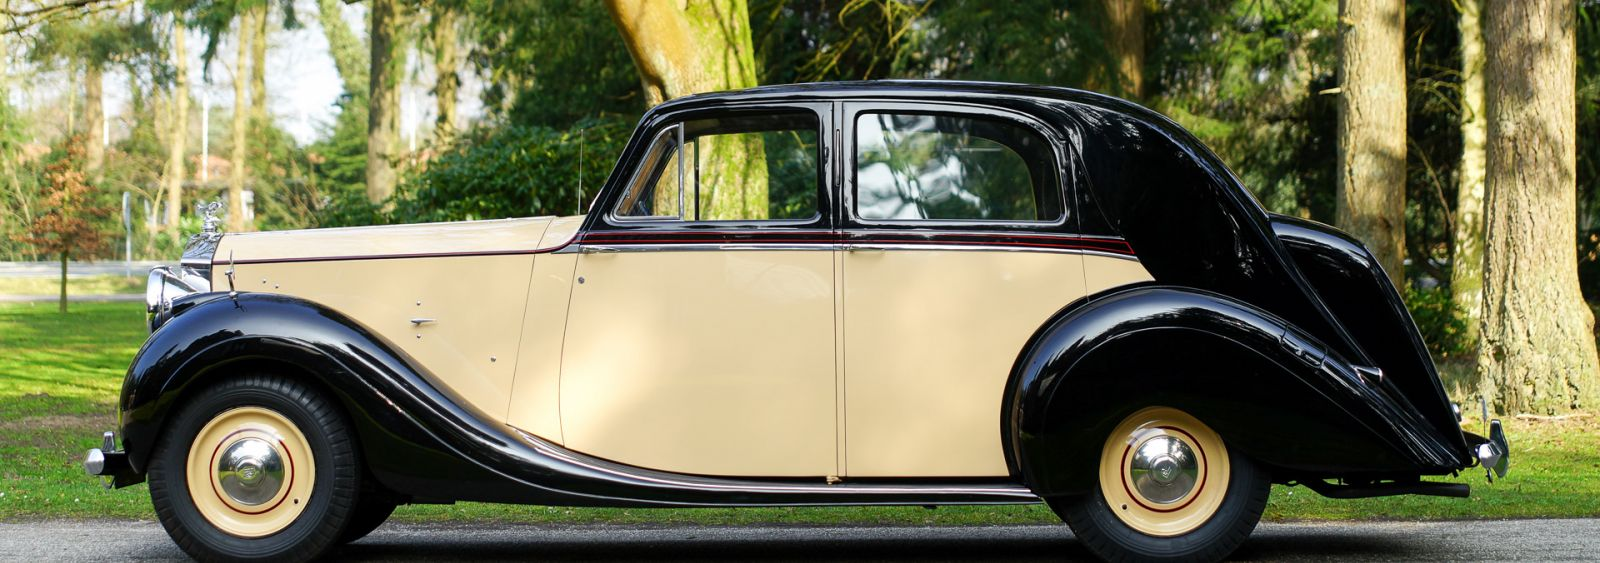 Rolls Royce Silver Wraith 1949 Welcome To Classicargarage